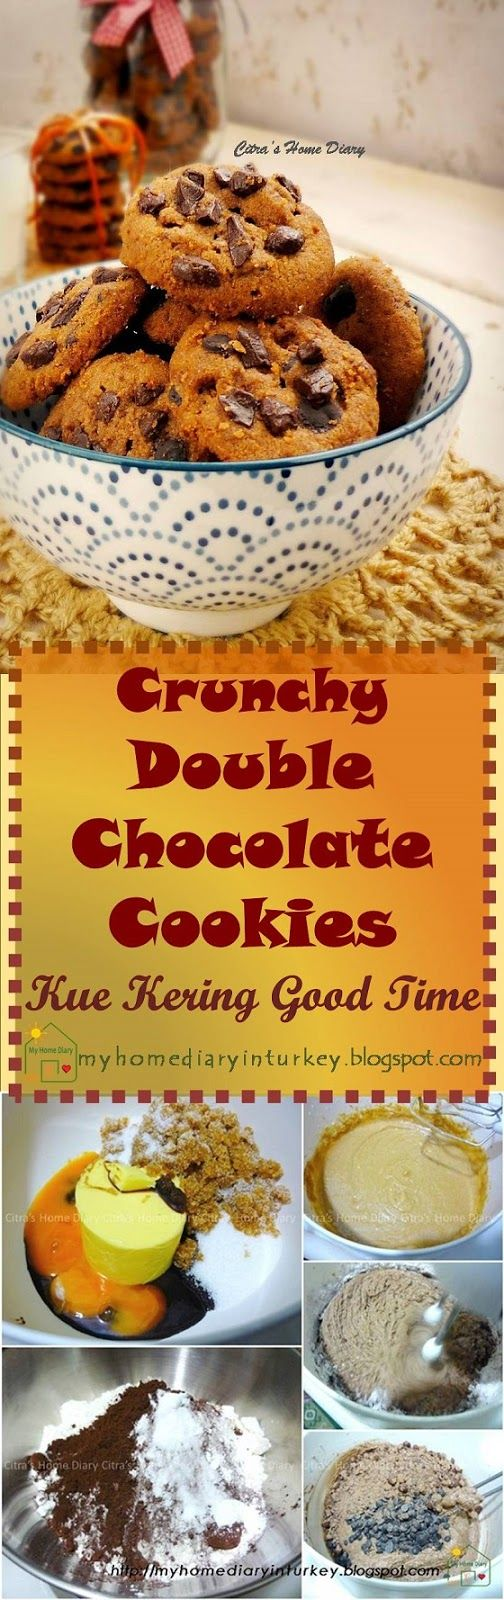 CRUNCHY DOUBLE CHOCOATE COOKİES Resep Kue Kering Good Time  / Crunchy Double Chocolate Cookies copycat recipe. #goodtimecookies #kuekeringcoklat #chocolatecookiesbestrecipe #sweets